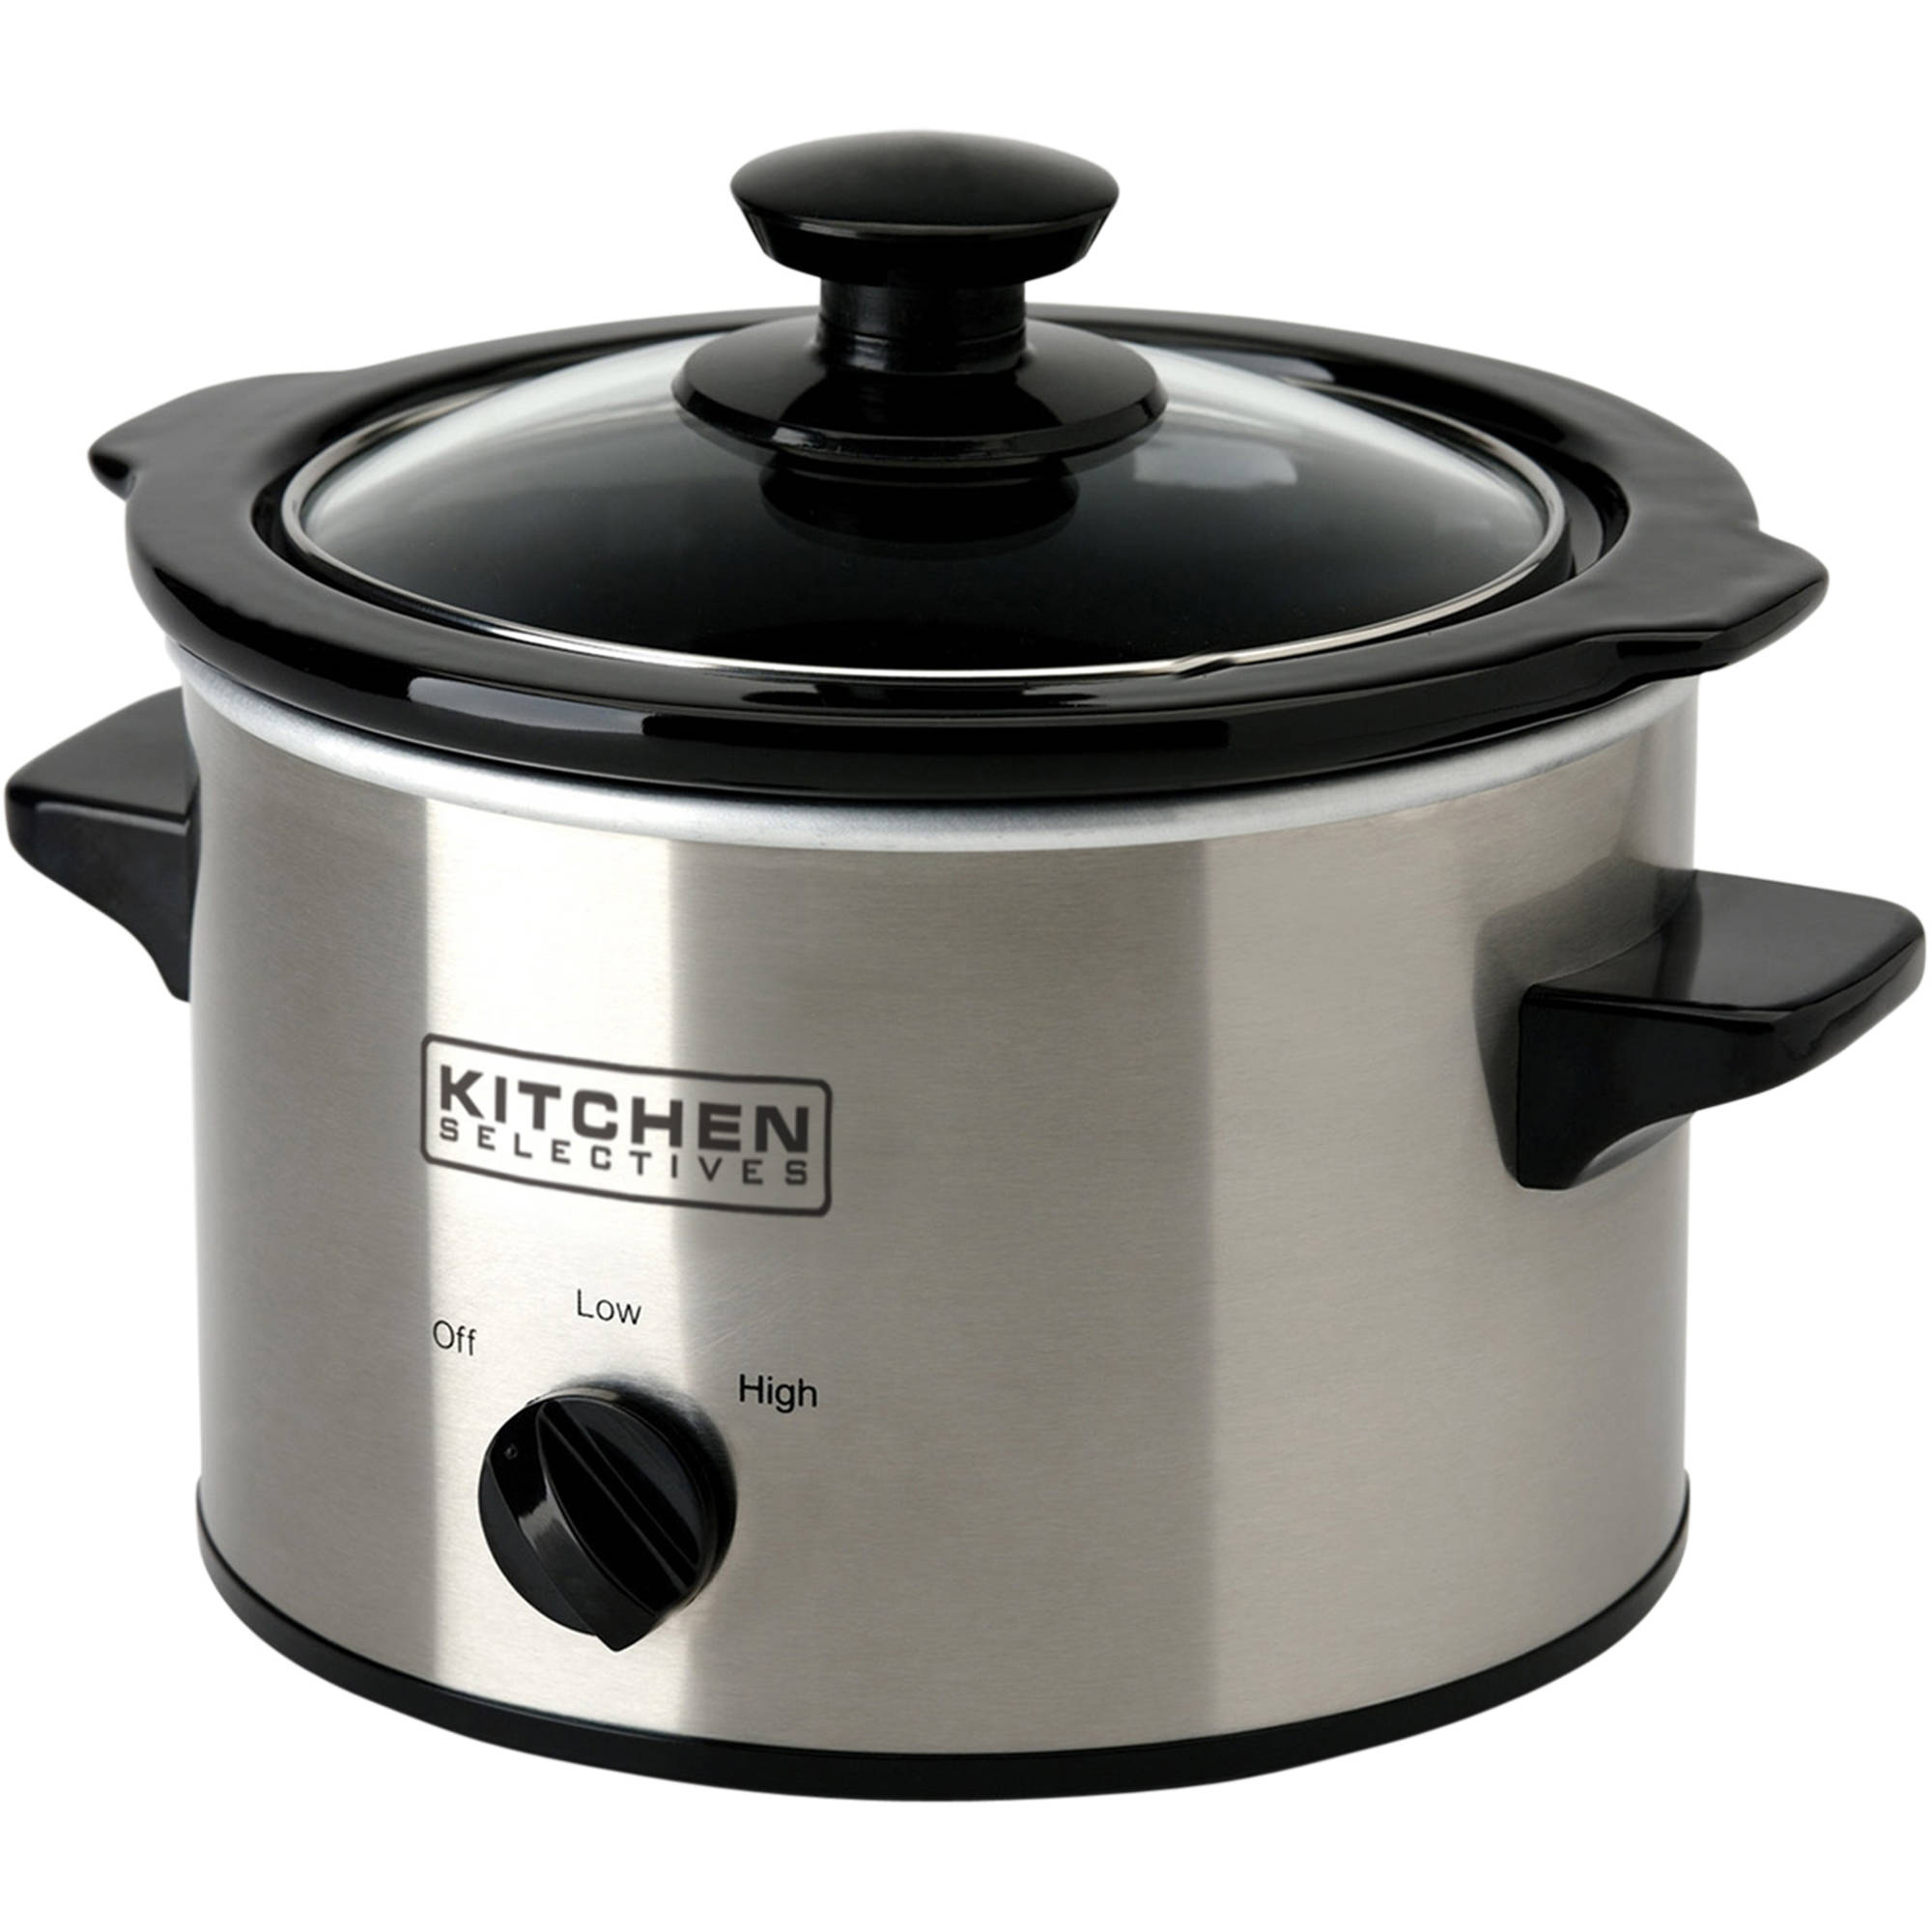 Kitchen Selectives Stainless Steel 1.5-Quart Slow Cooker, Stainless Steel